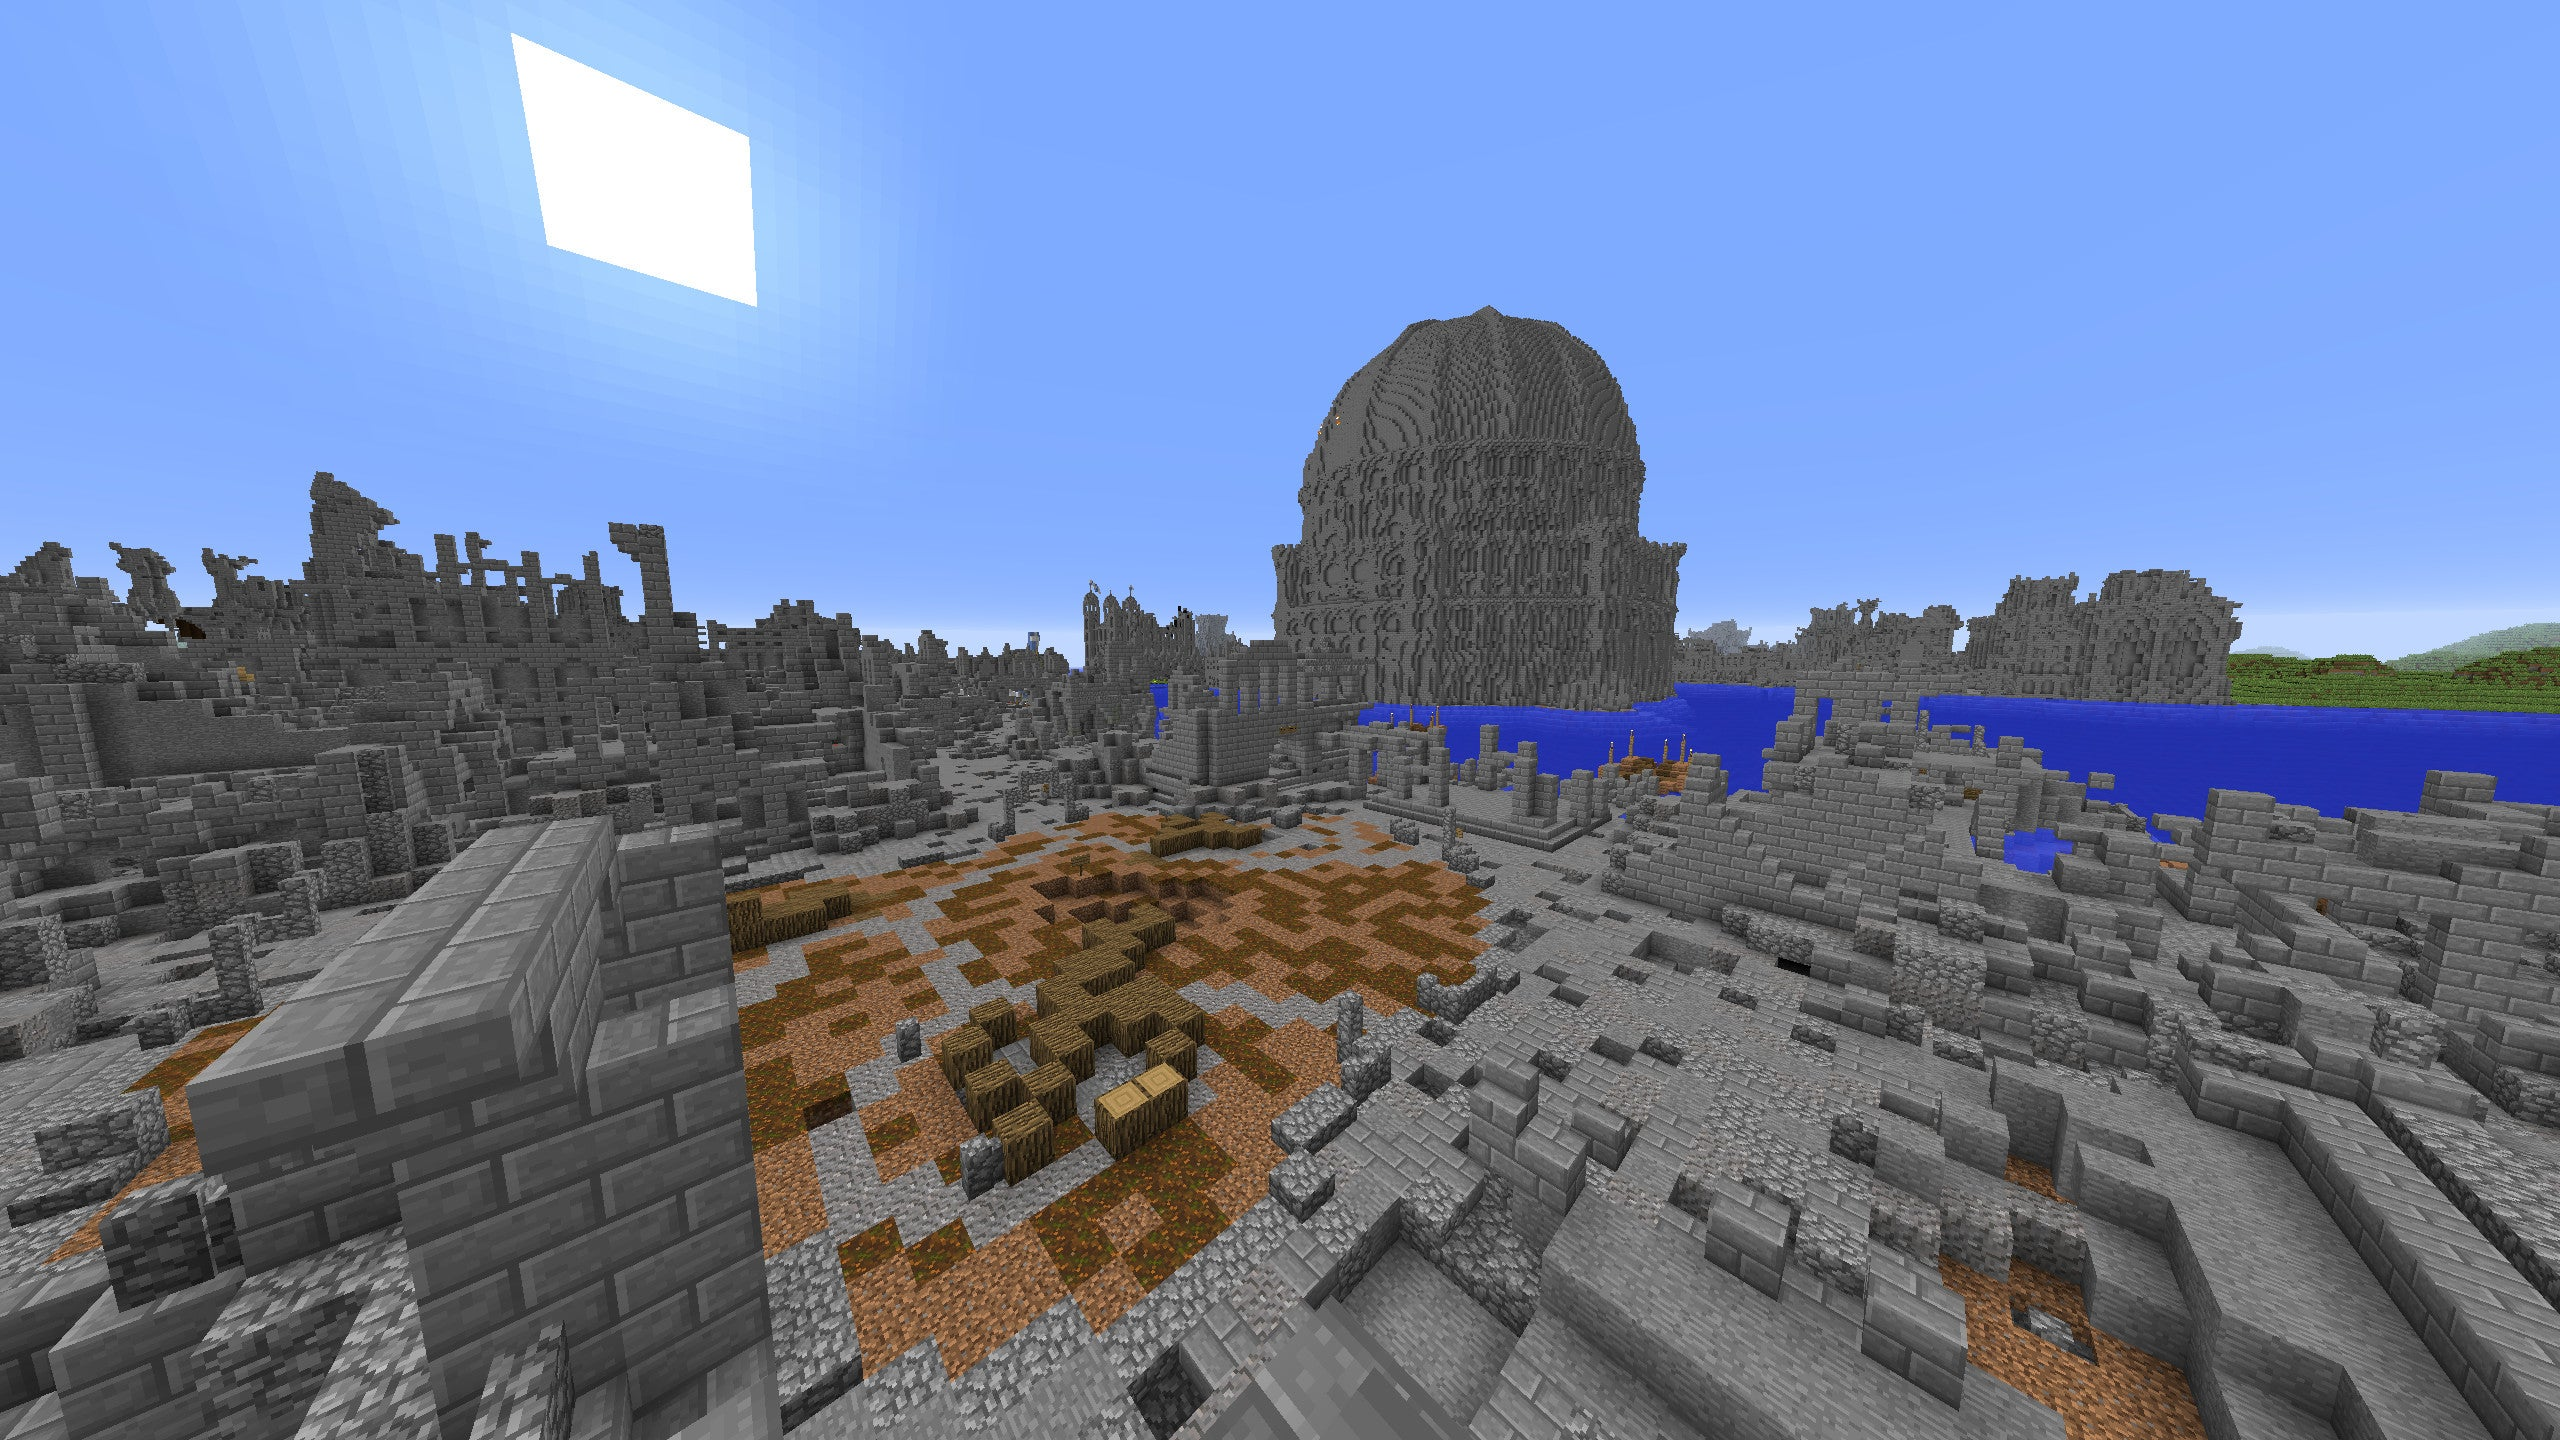 Explore Gondor's Ancient Capital from Lord of the Rings in Minecraft